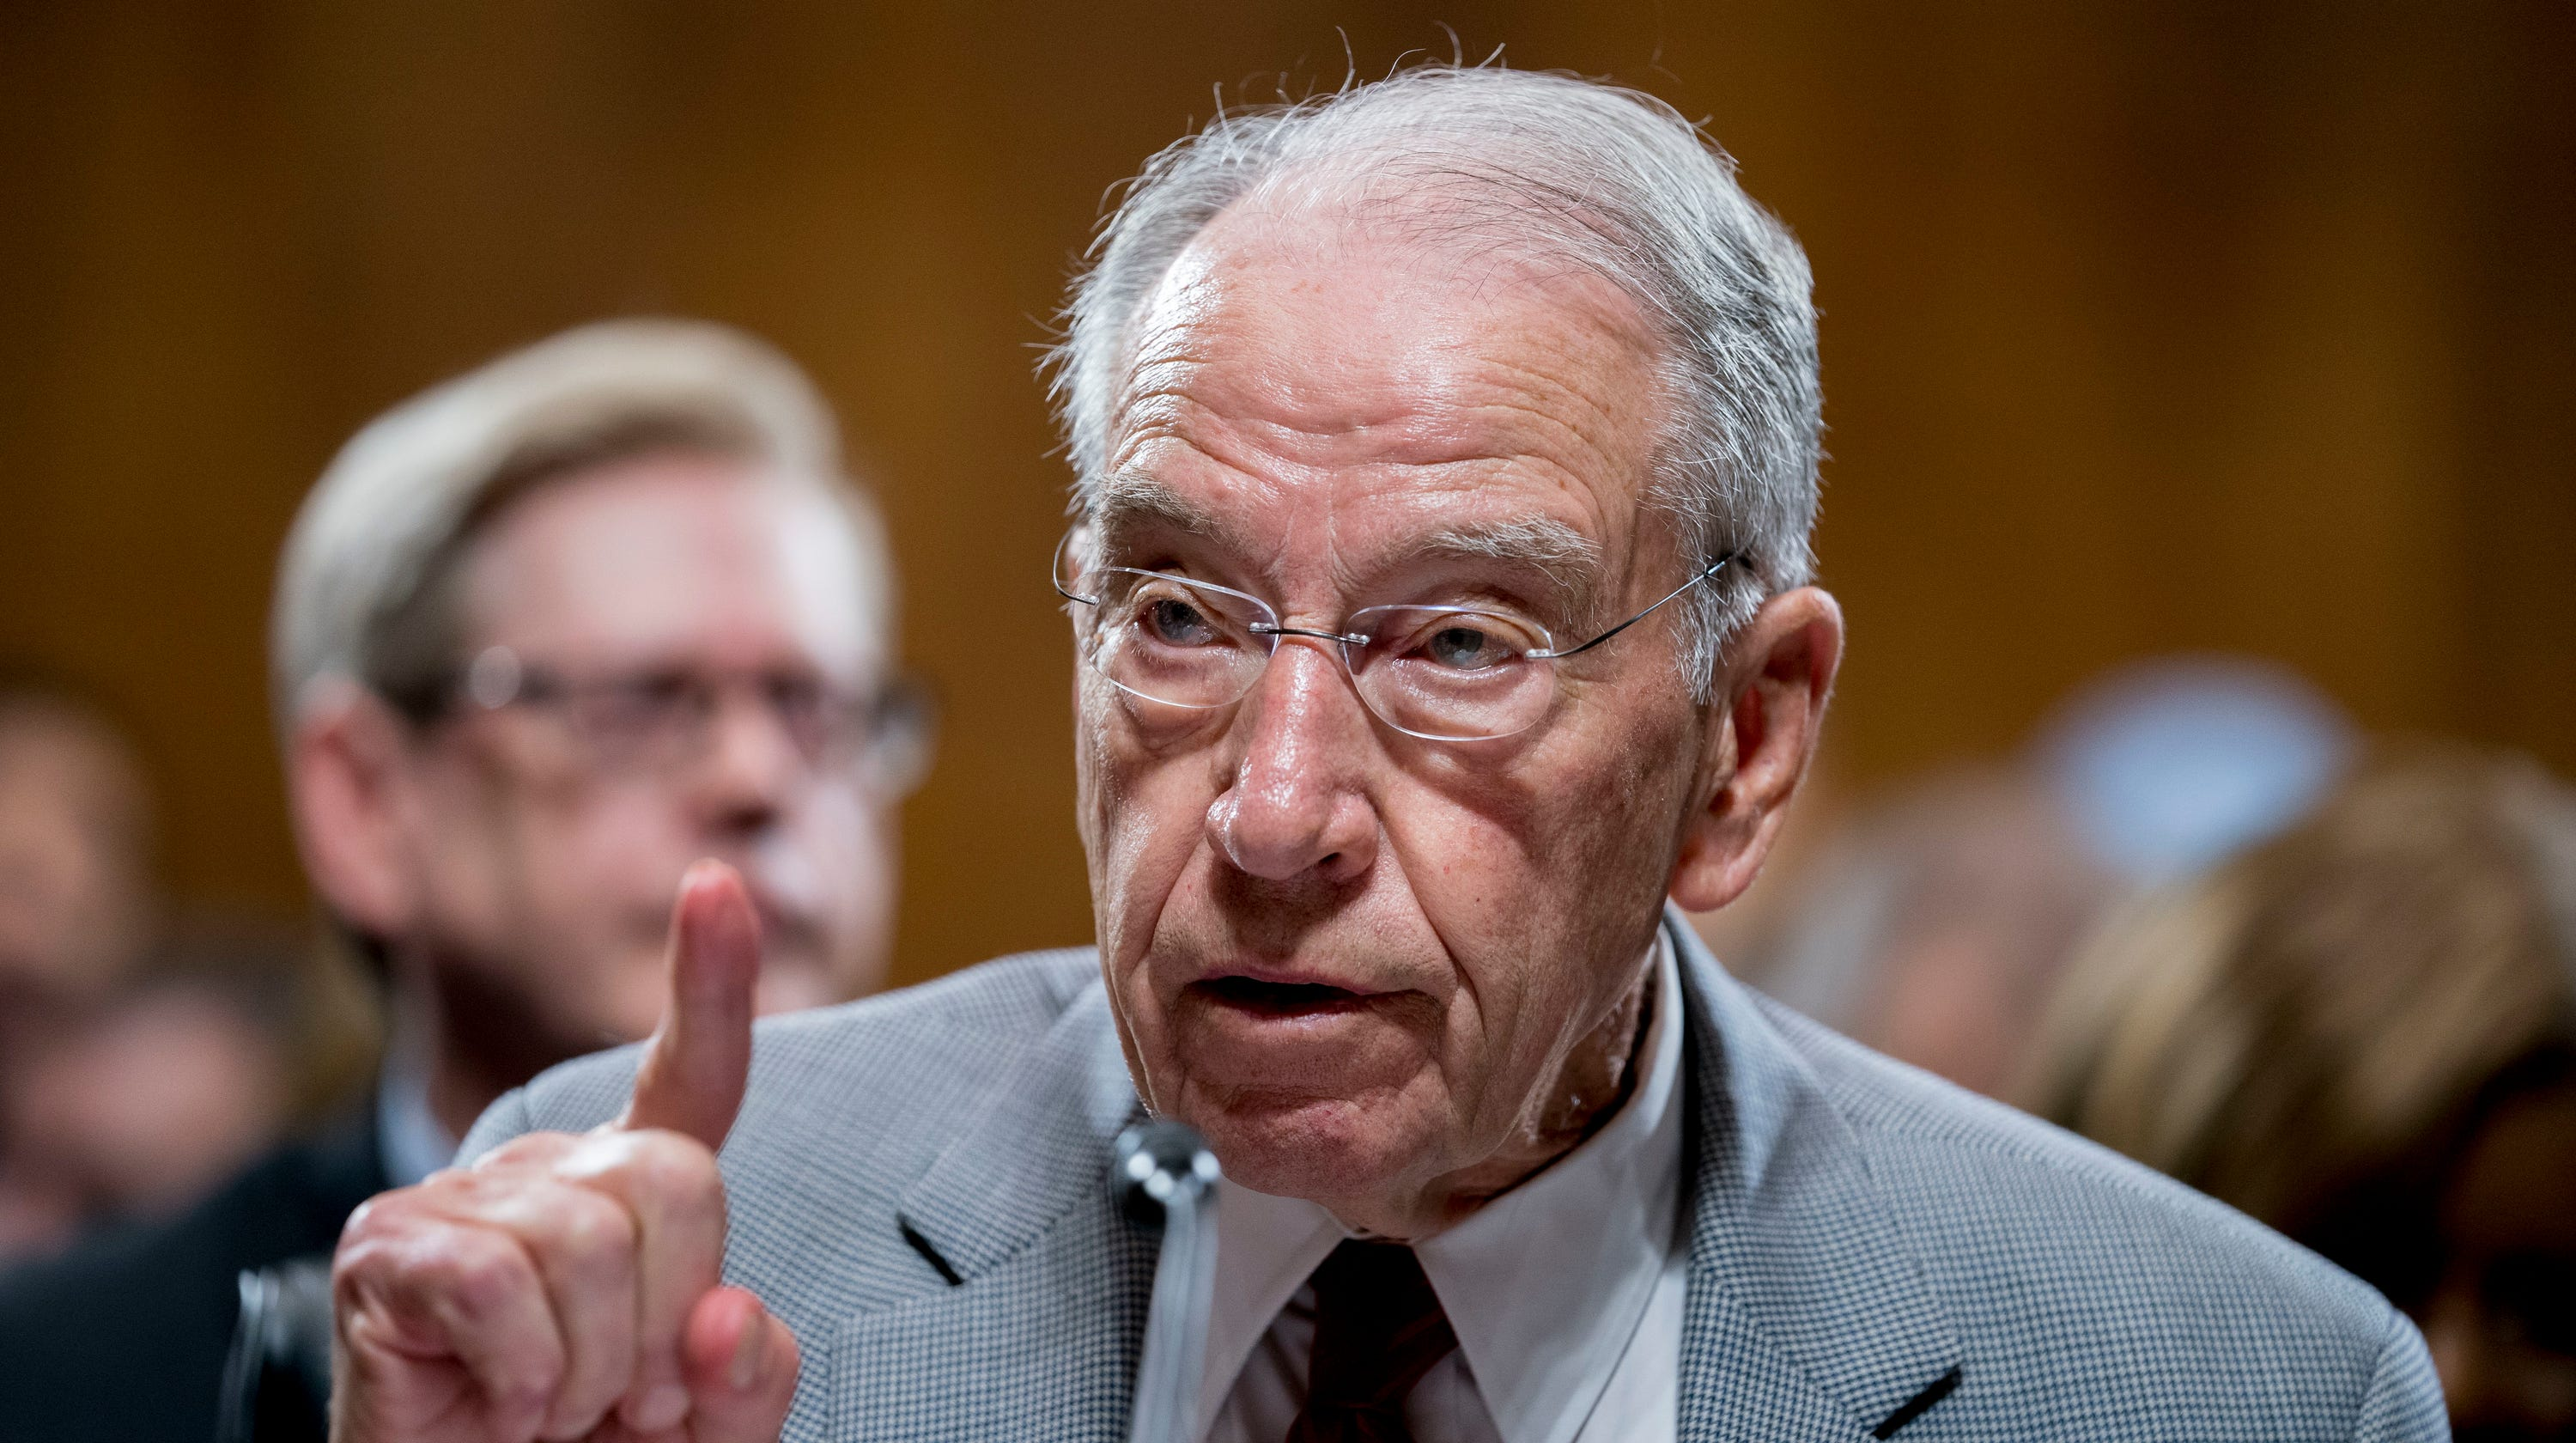 Sen. Chuck Grassley: 'I'd be very concerned' about how Donald Trump's tax returns got out – USA TODAY